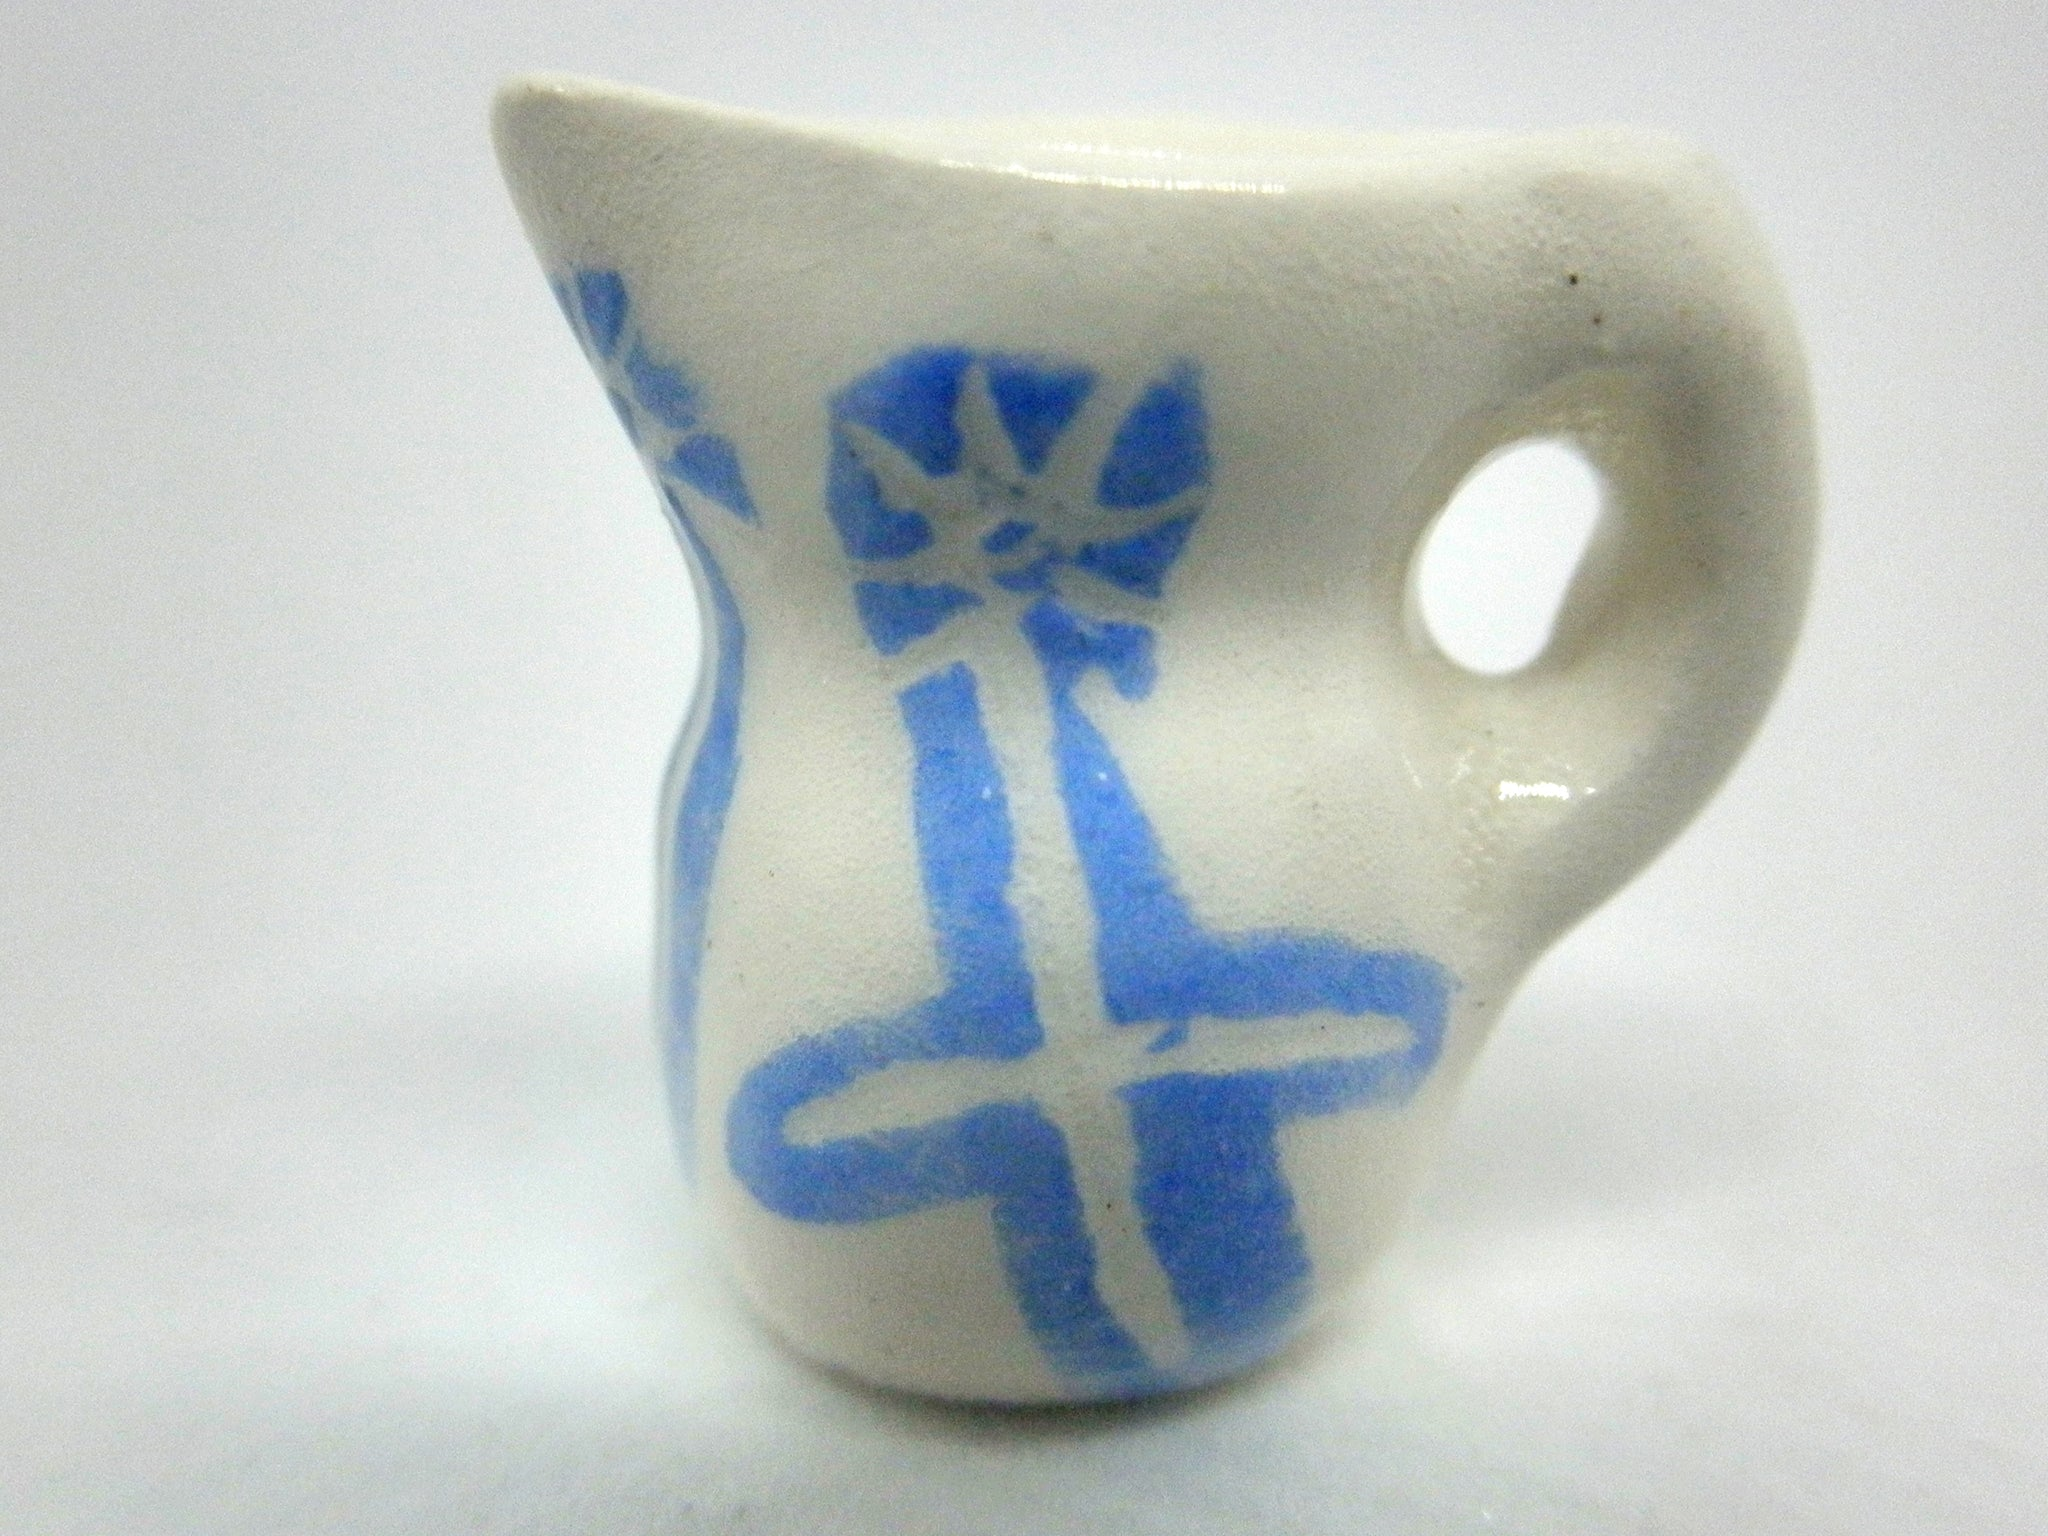 Miniature Picasso inspired pitcher - scrafitto blue